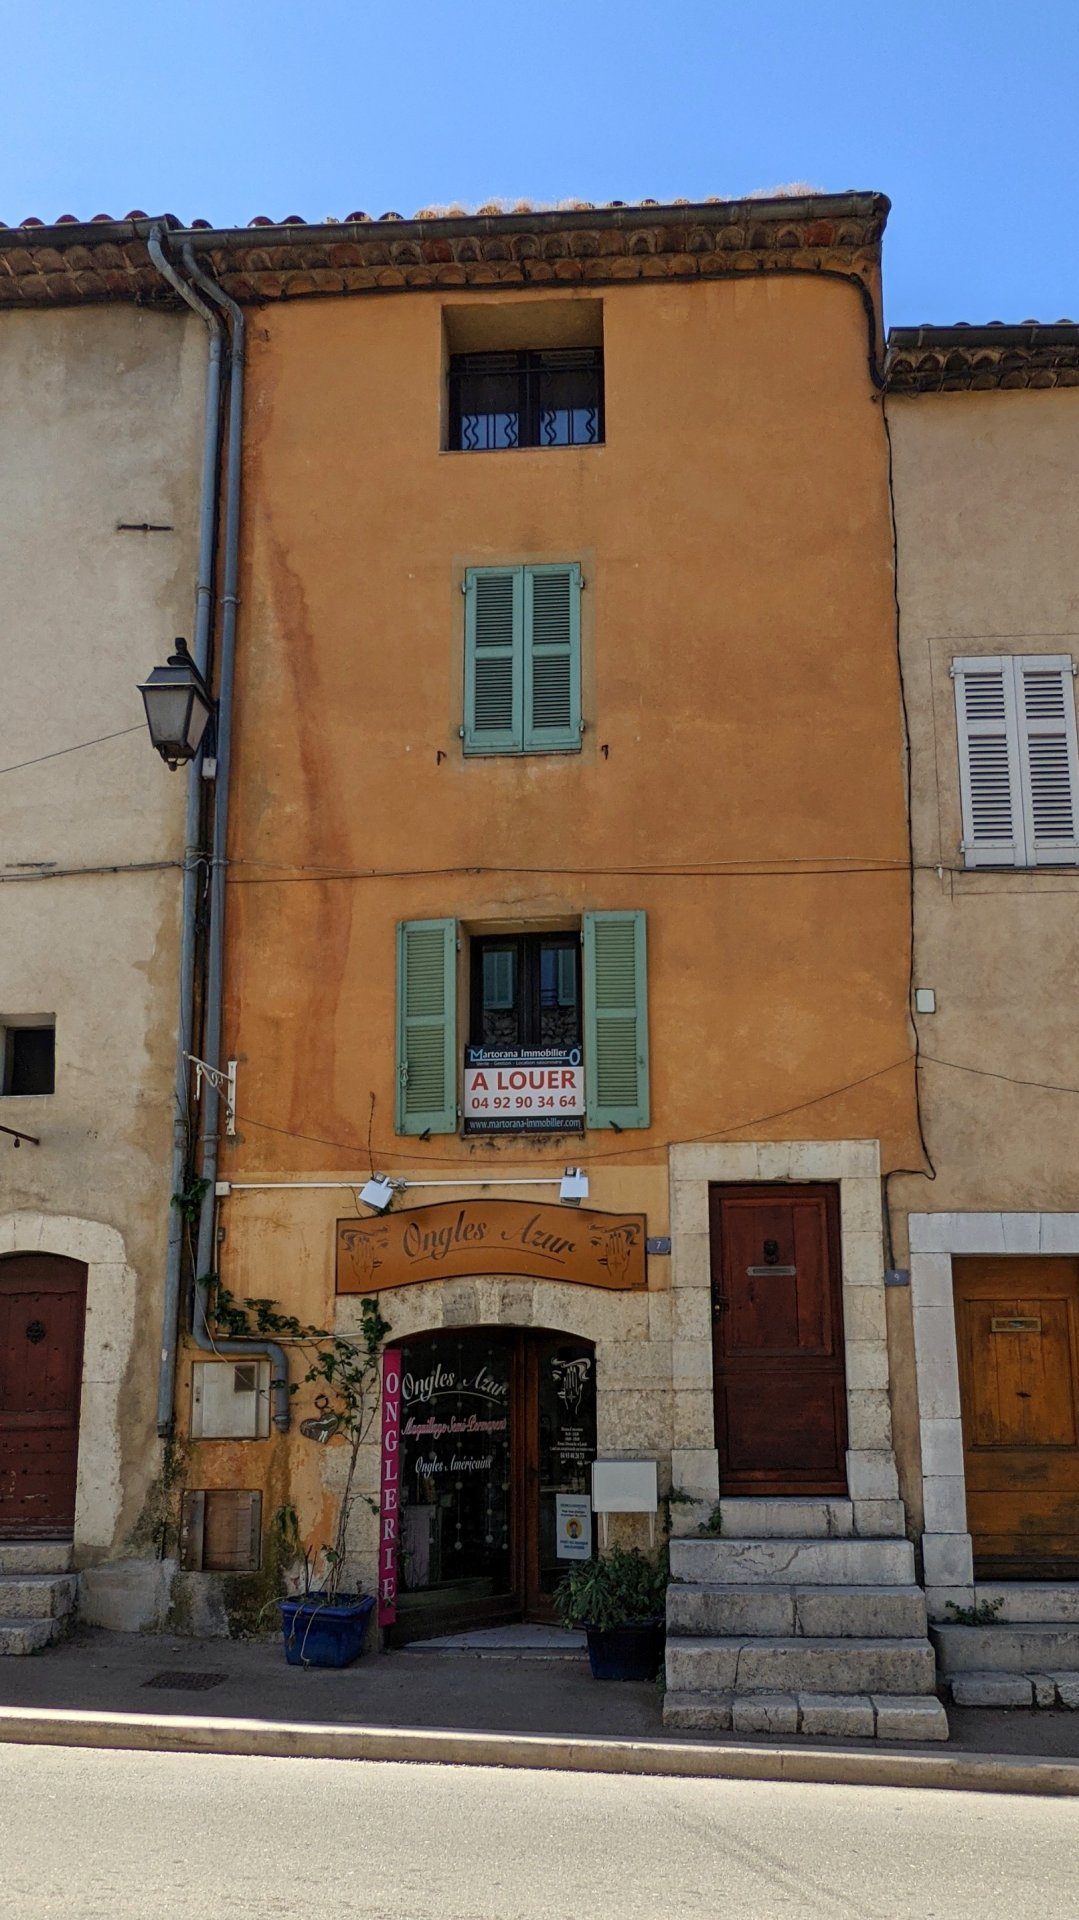 2-3 room townhouse in the heart of the village of Valbonne